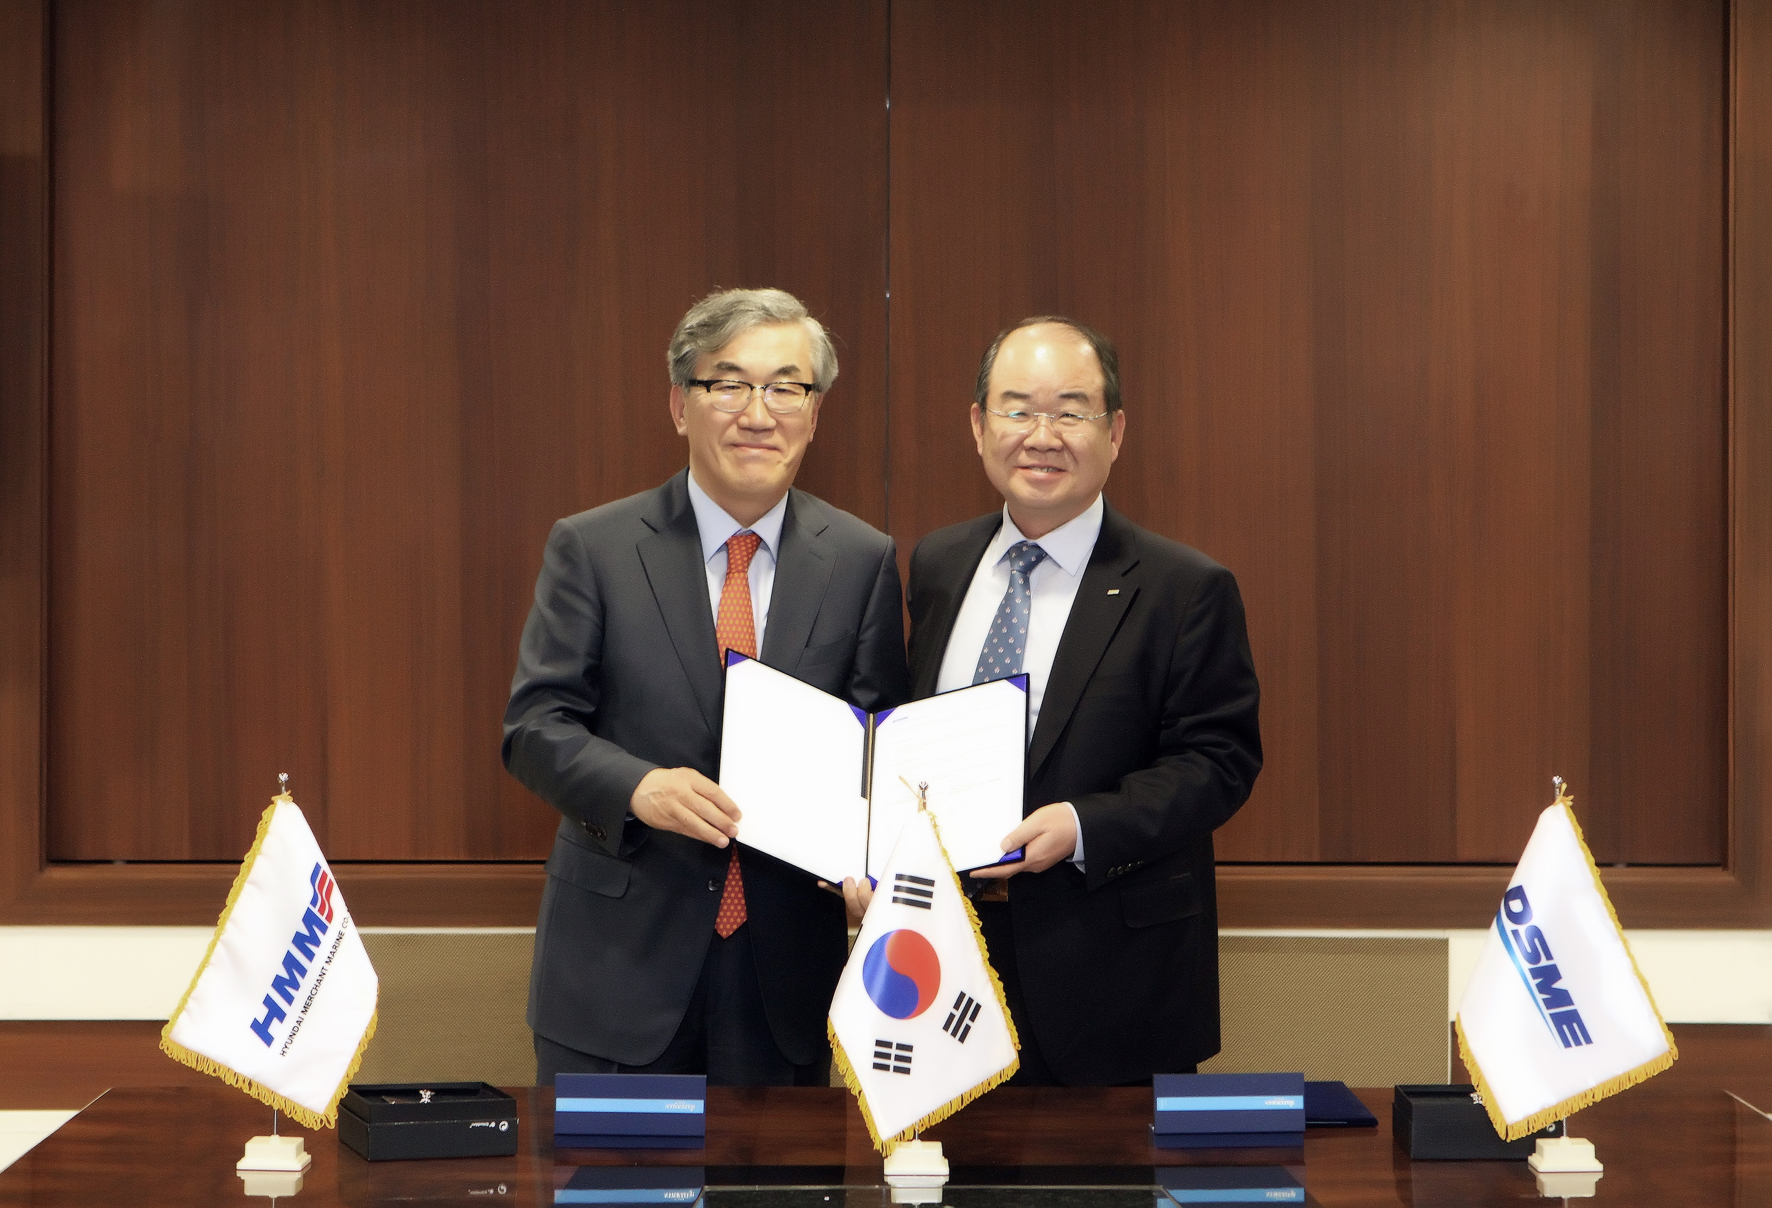 Jung Sung-rip (right), president of DSME and Yoo Chang-geun, president of HMM are posing for a photo shoot after signing a letter of intent to build a super-sized oil tanker at the Daedong building of DSME in Seoul on April 7.